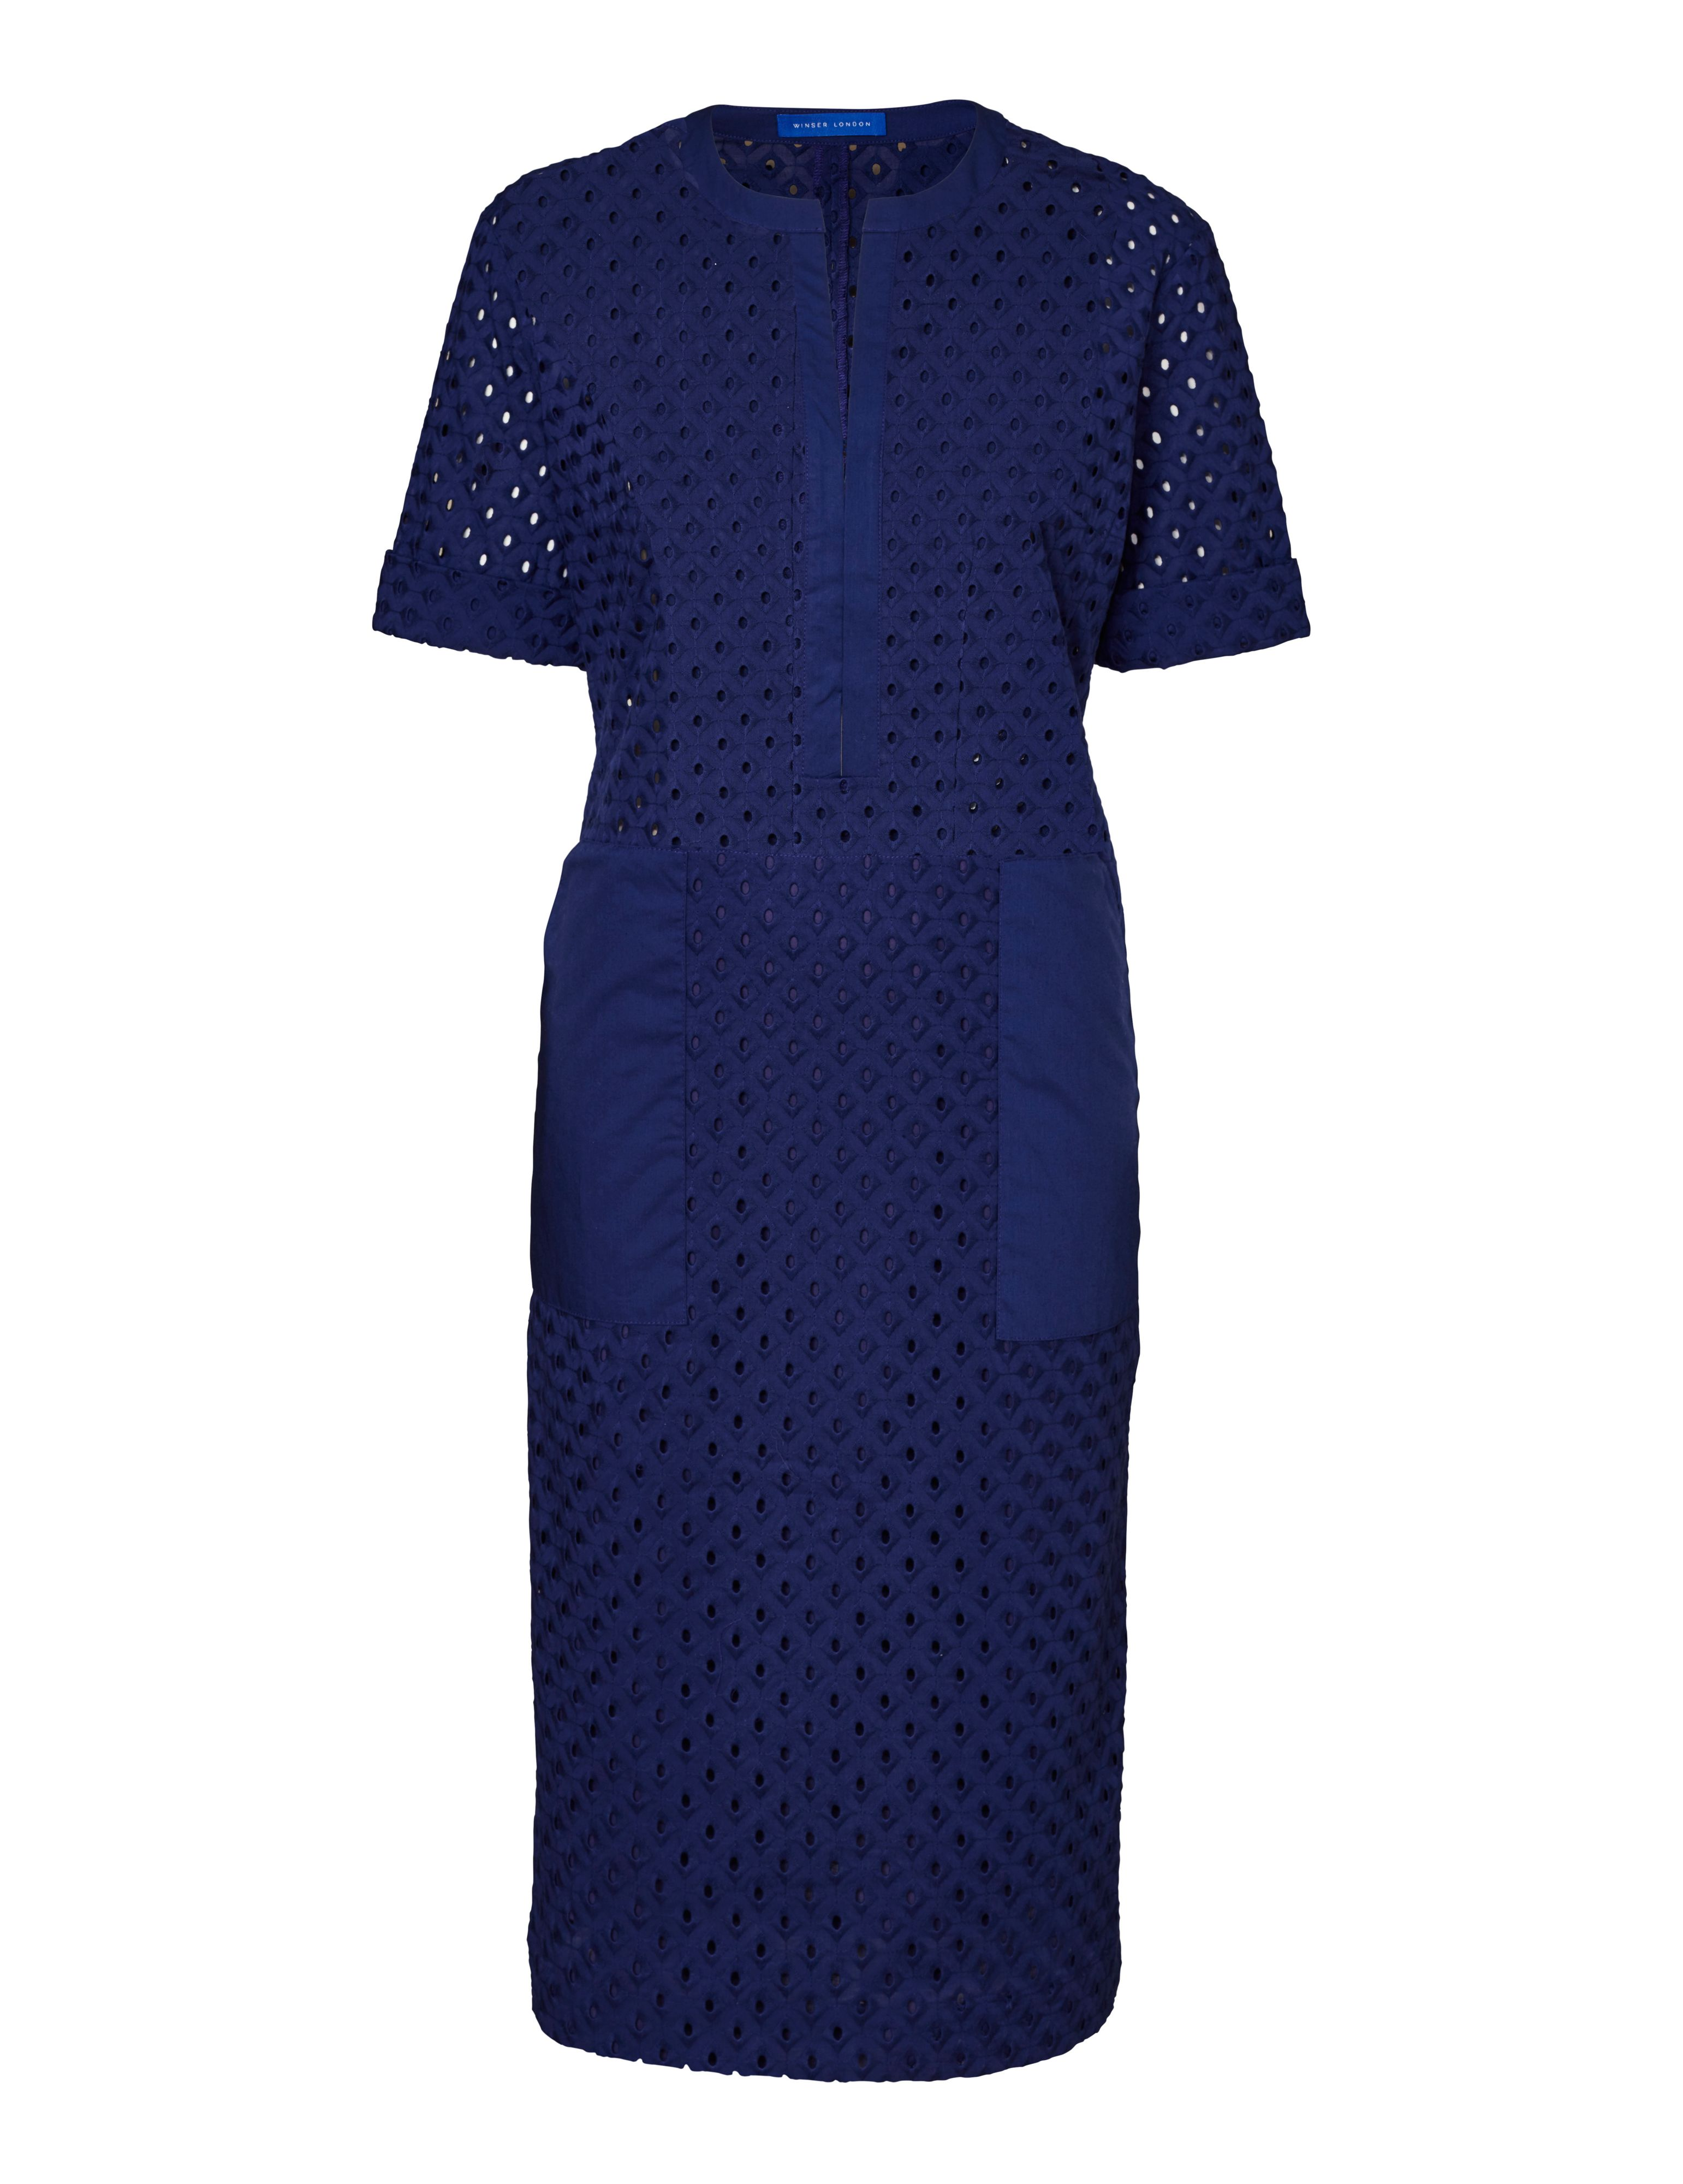 Winser London Pure Cotton Broderie Anglaise Shift Dress, Blue